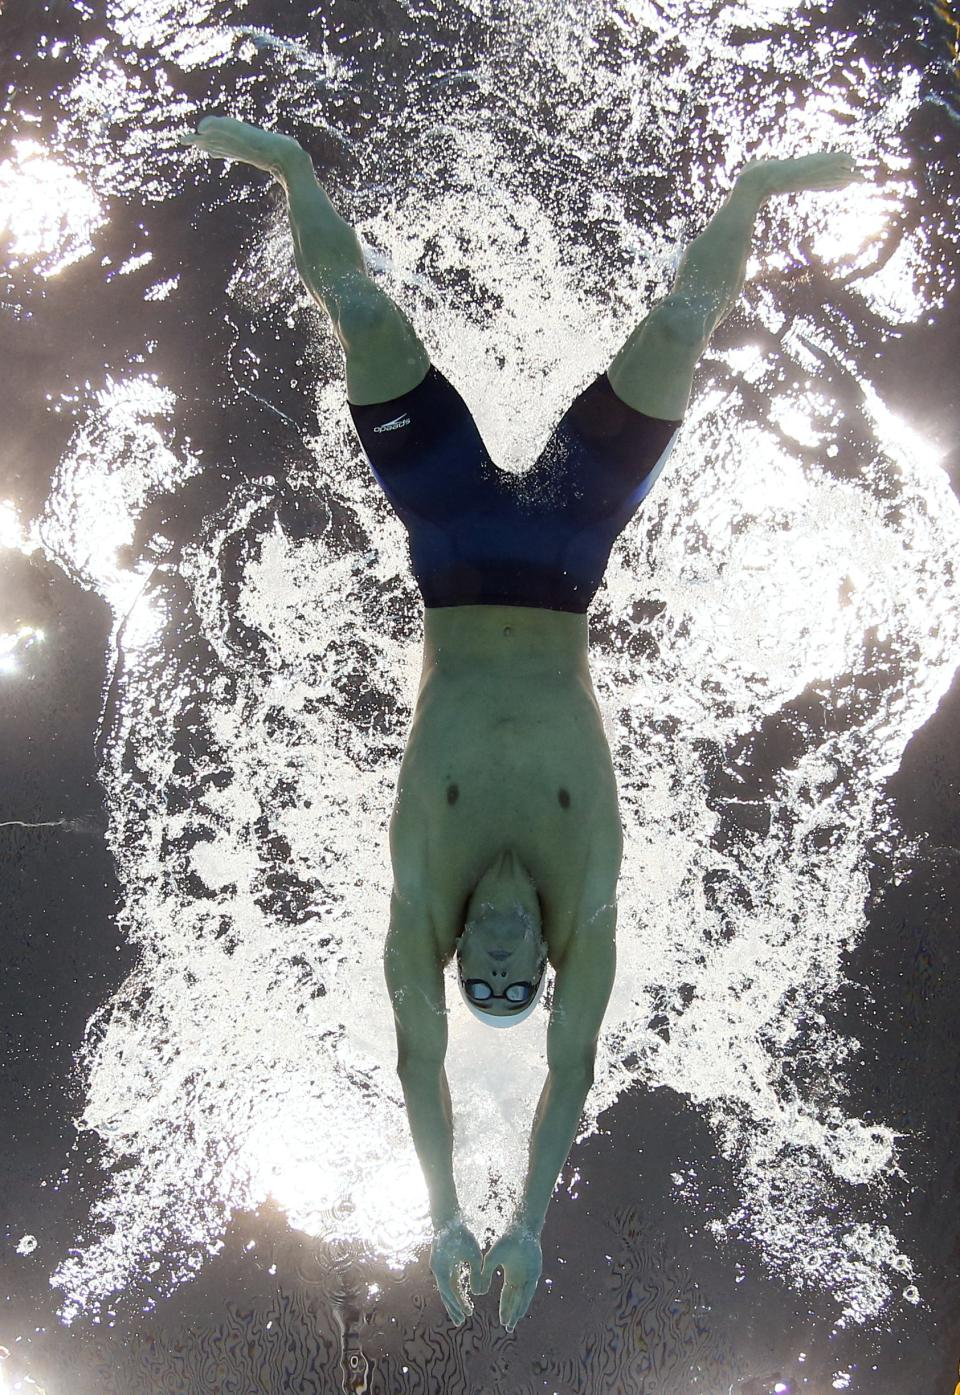 USA's Michael Phelps competes in a heat of the men's 400-meter individual medley at the Aquatics Centre in the Olympic Park during the 2012 Summer Olympics in London, Saturday, July 28, 2012. (AP Photo/David J. Phillip)